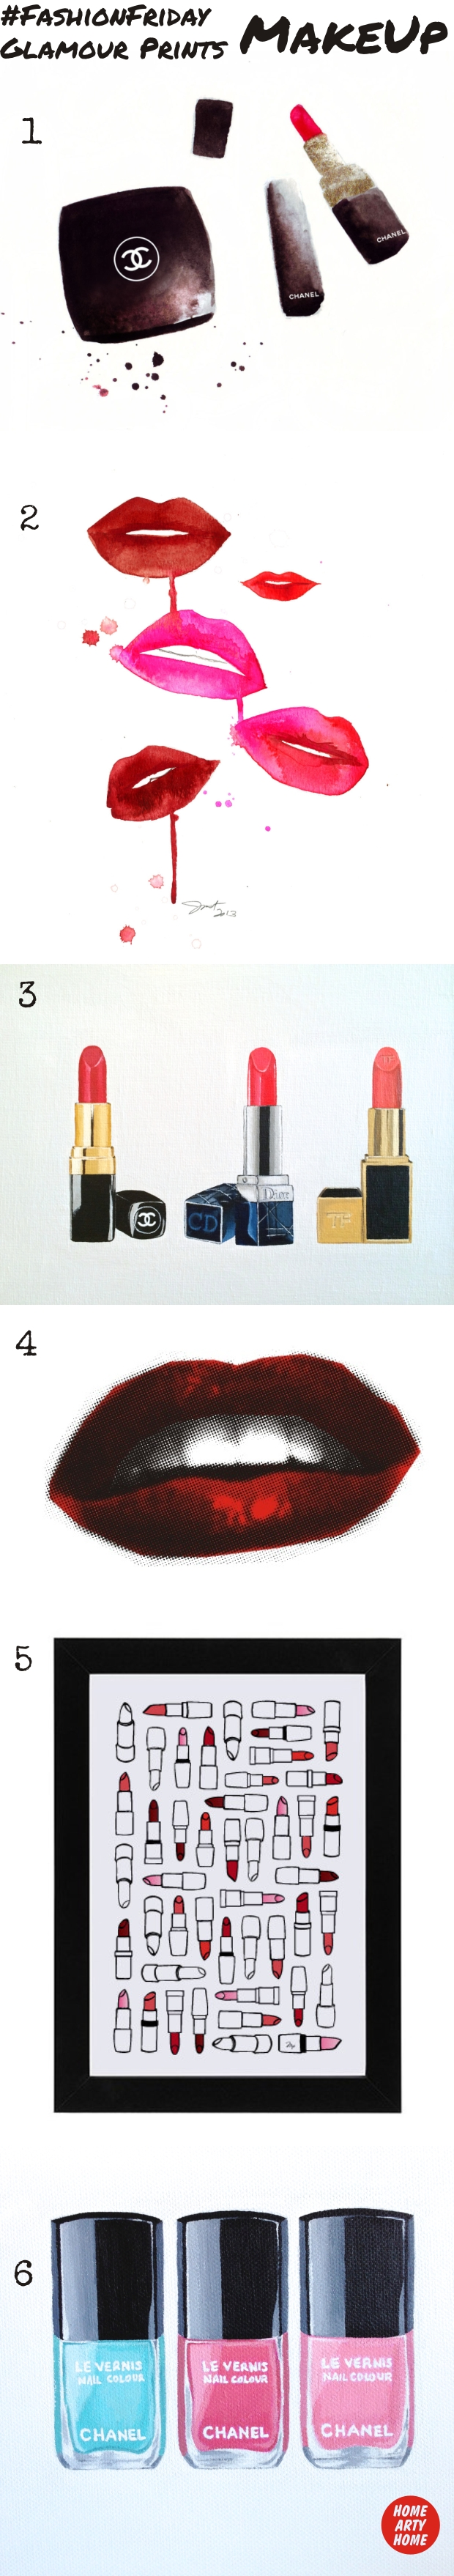 FashionFriday MAKEUP homeartyhome